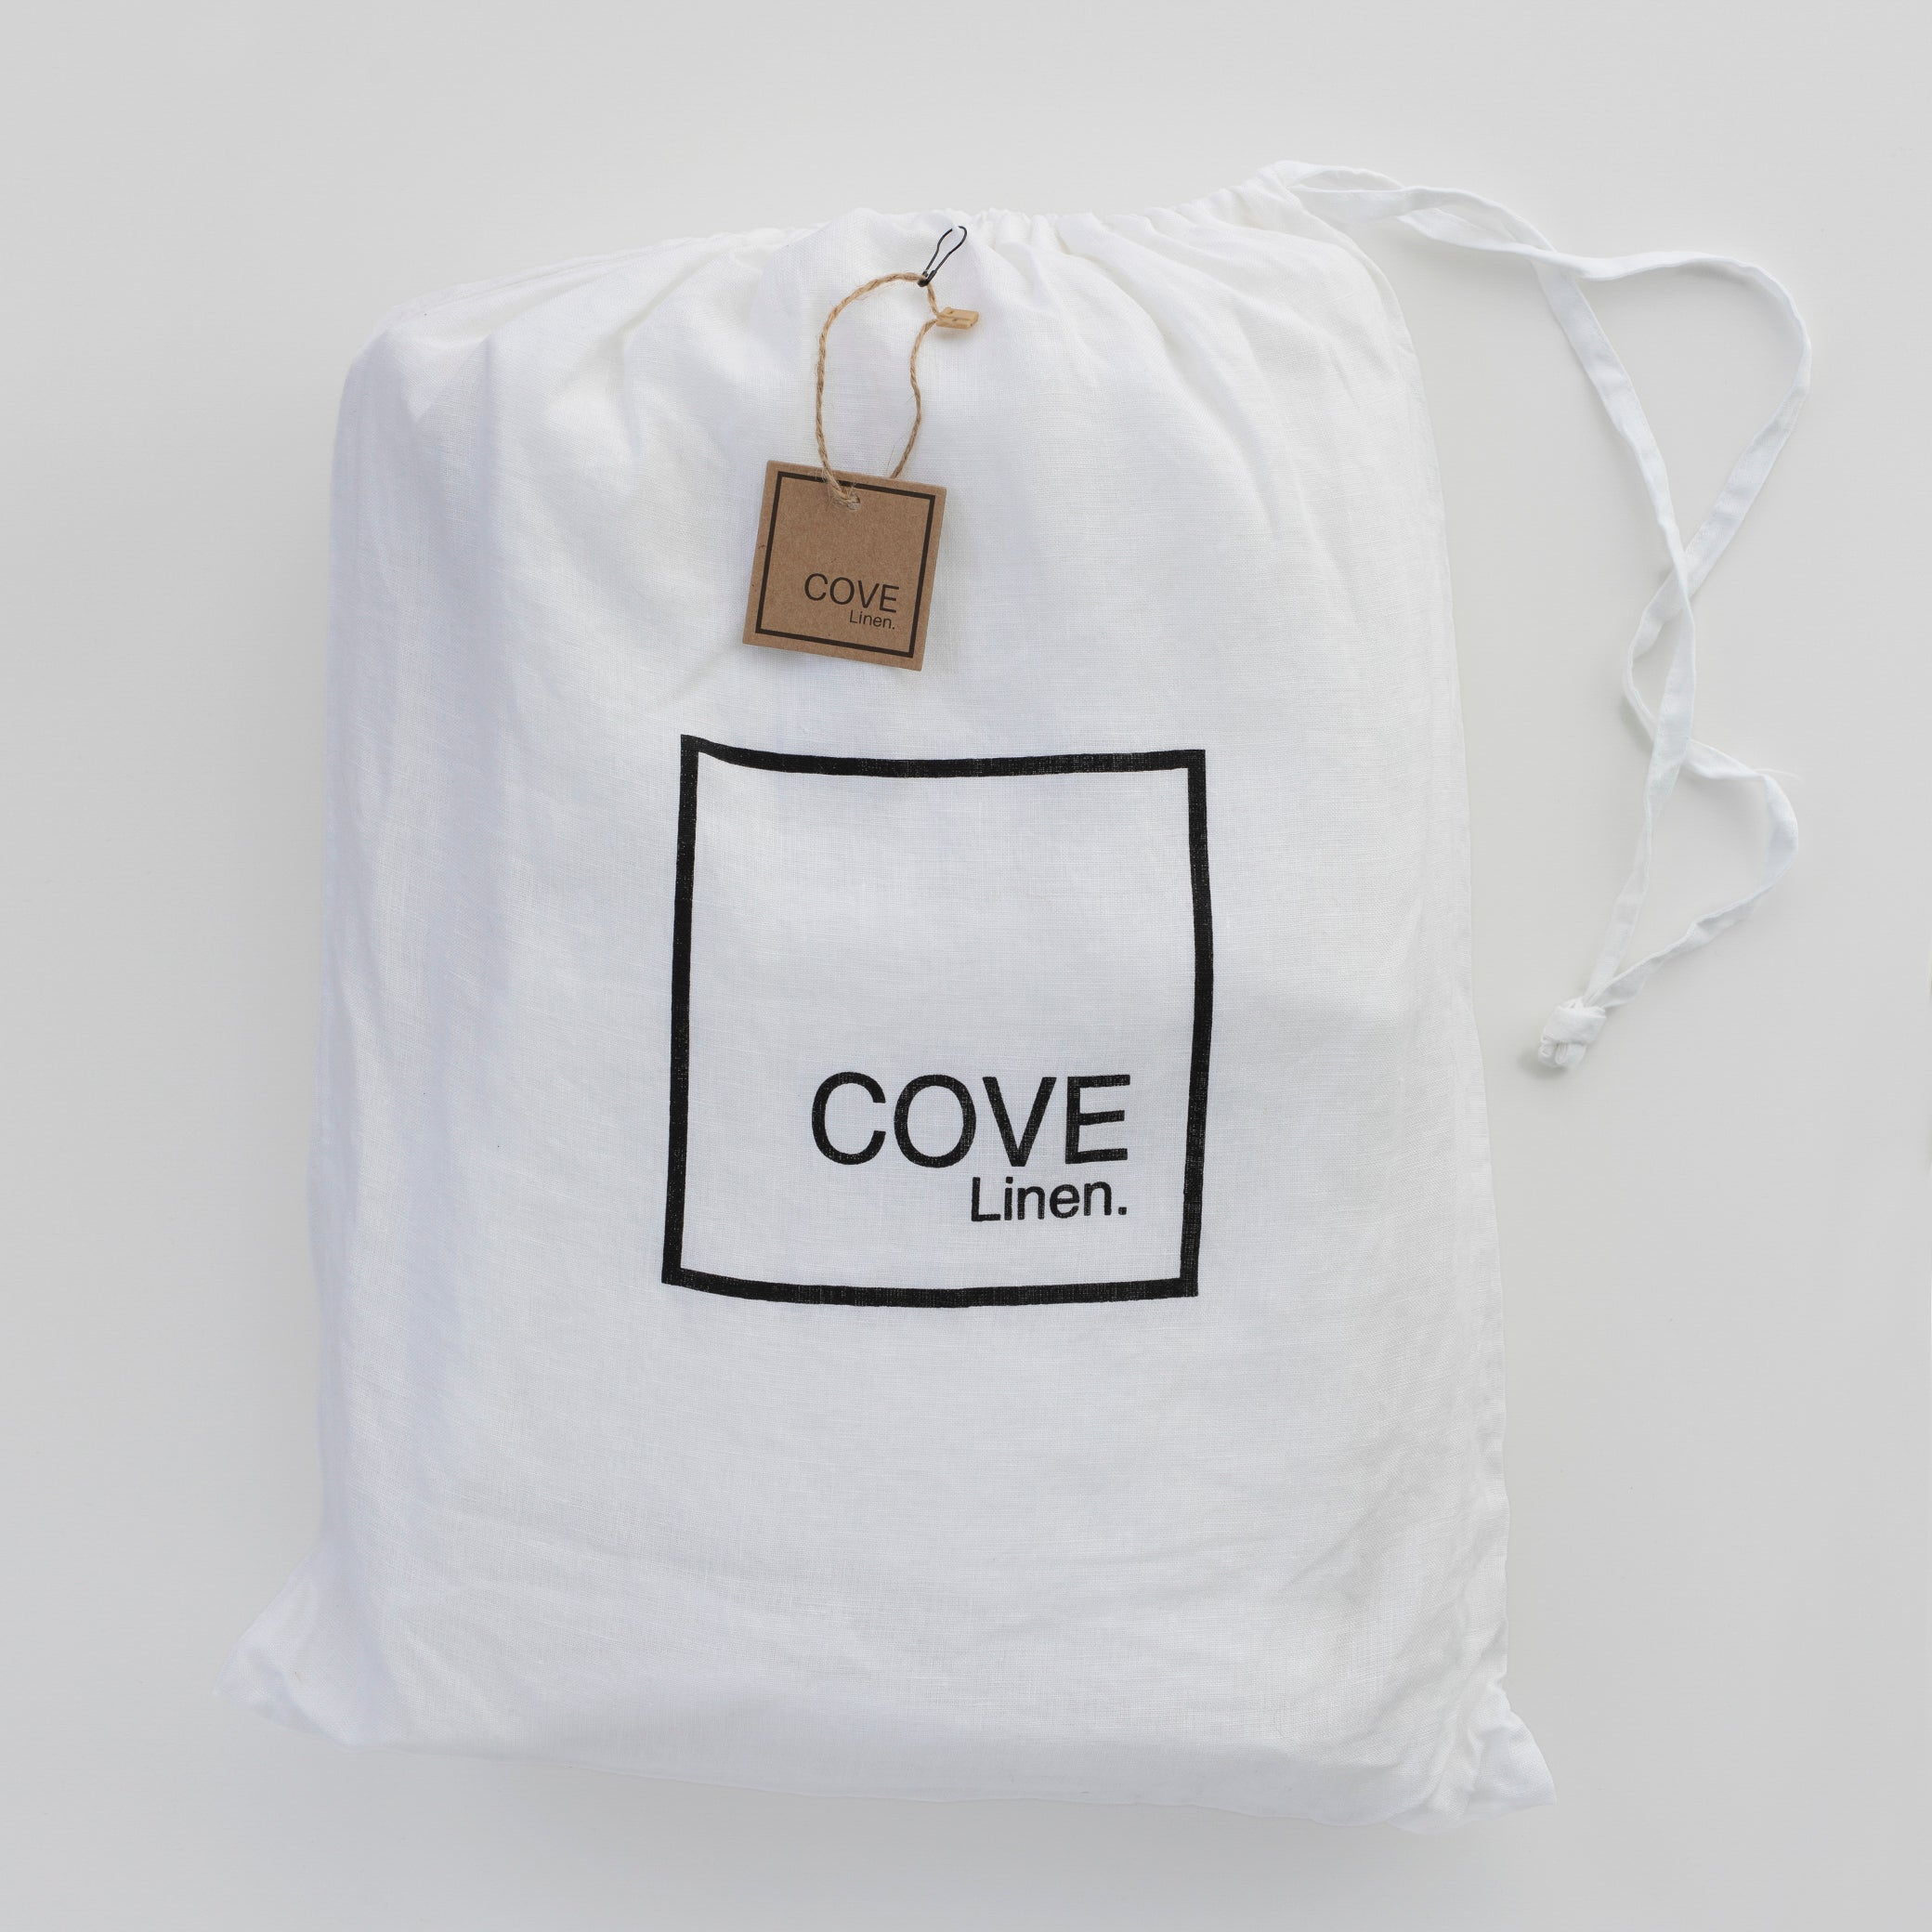 Cove Linen Bed cover & pillow case set - Vintage White-onefinesunday co